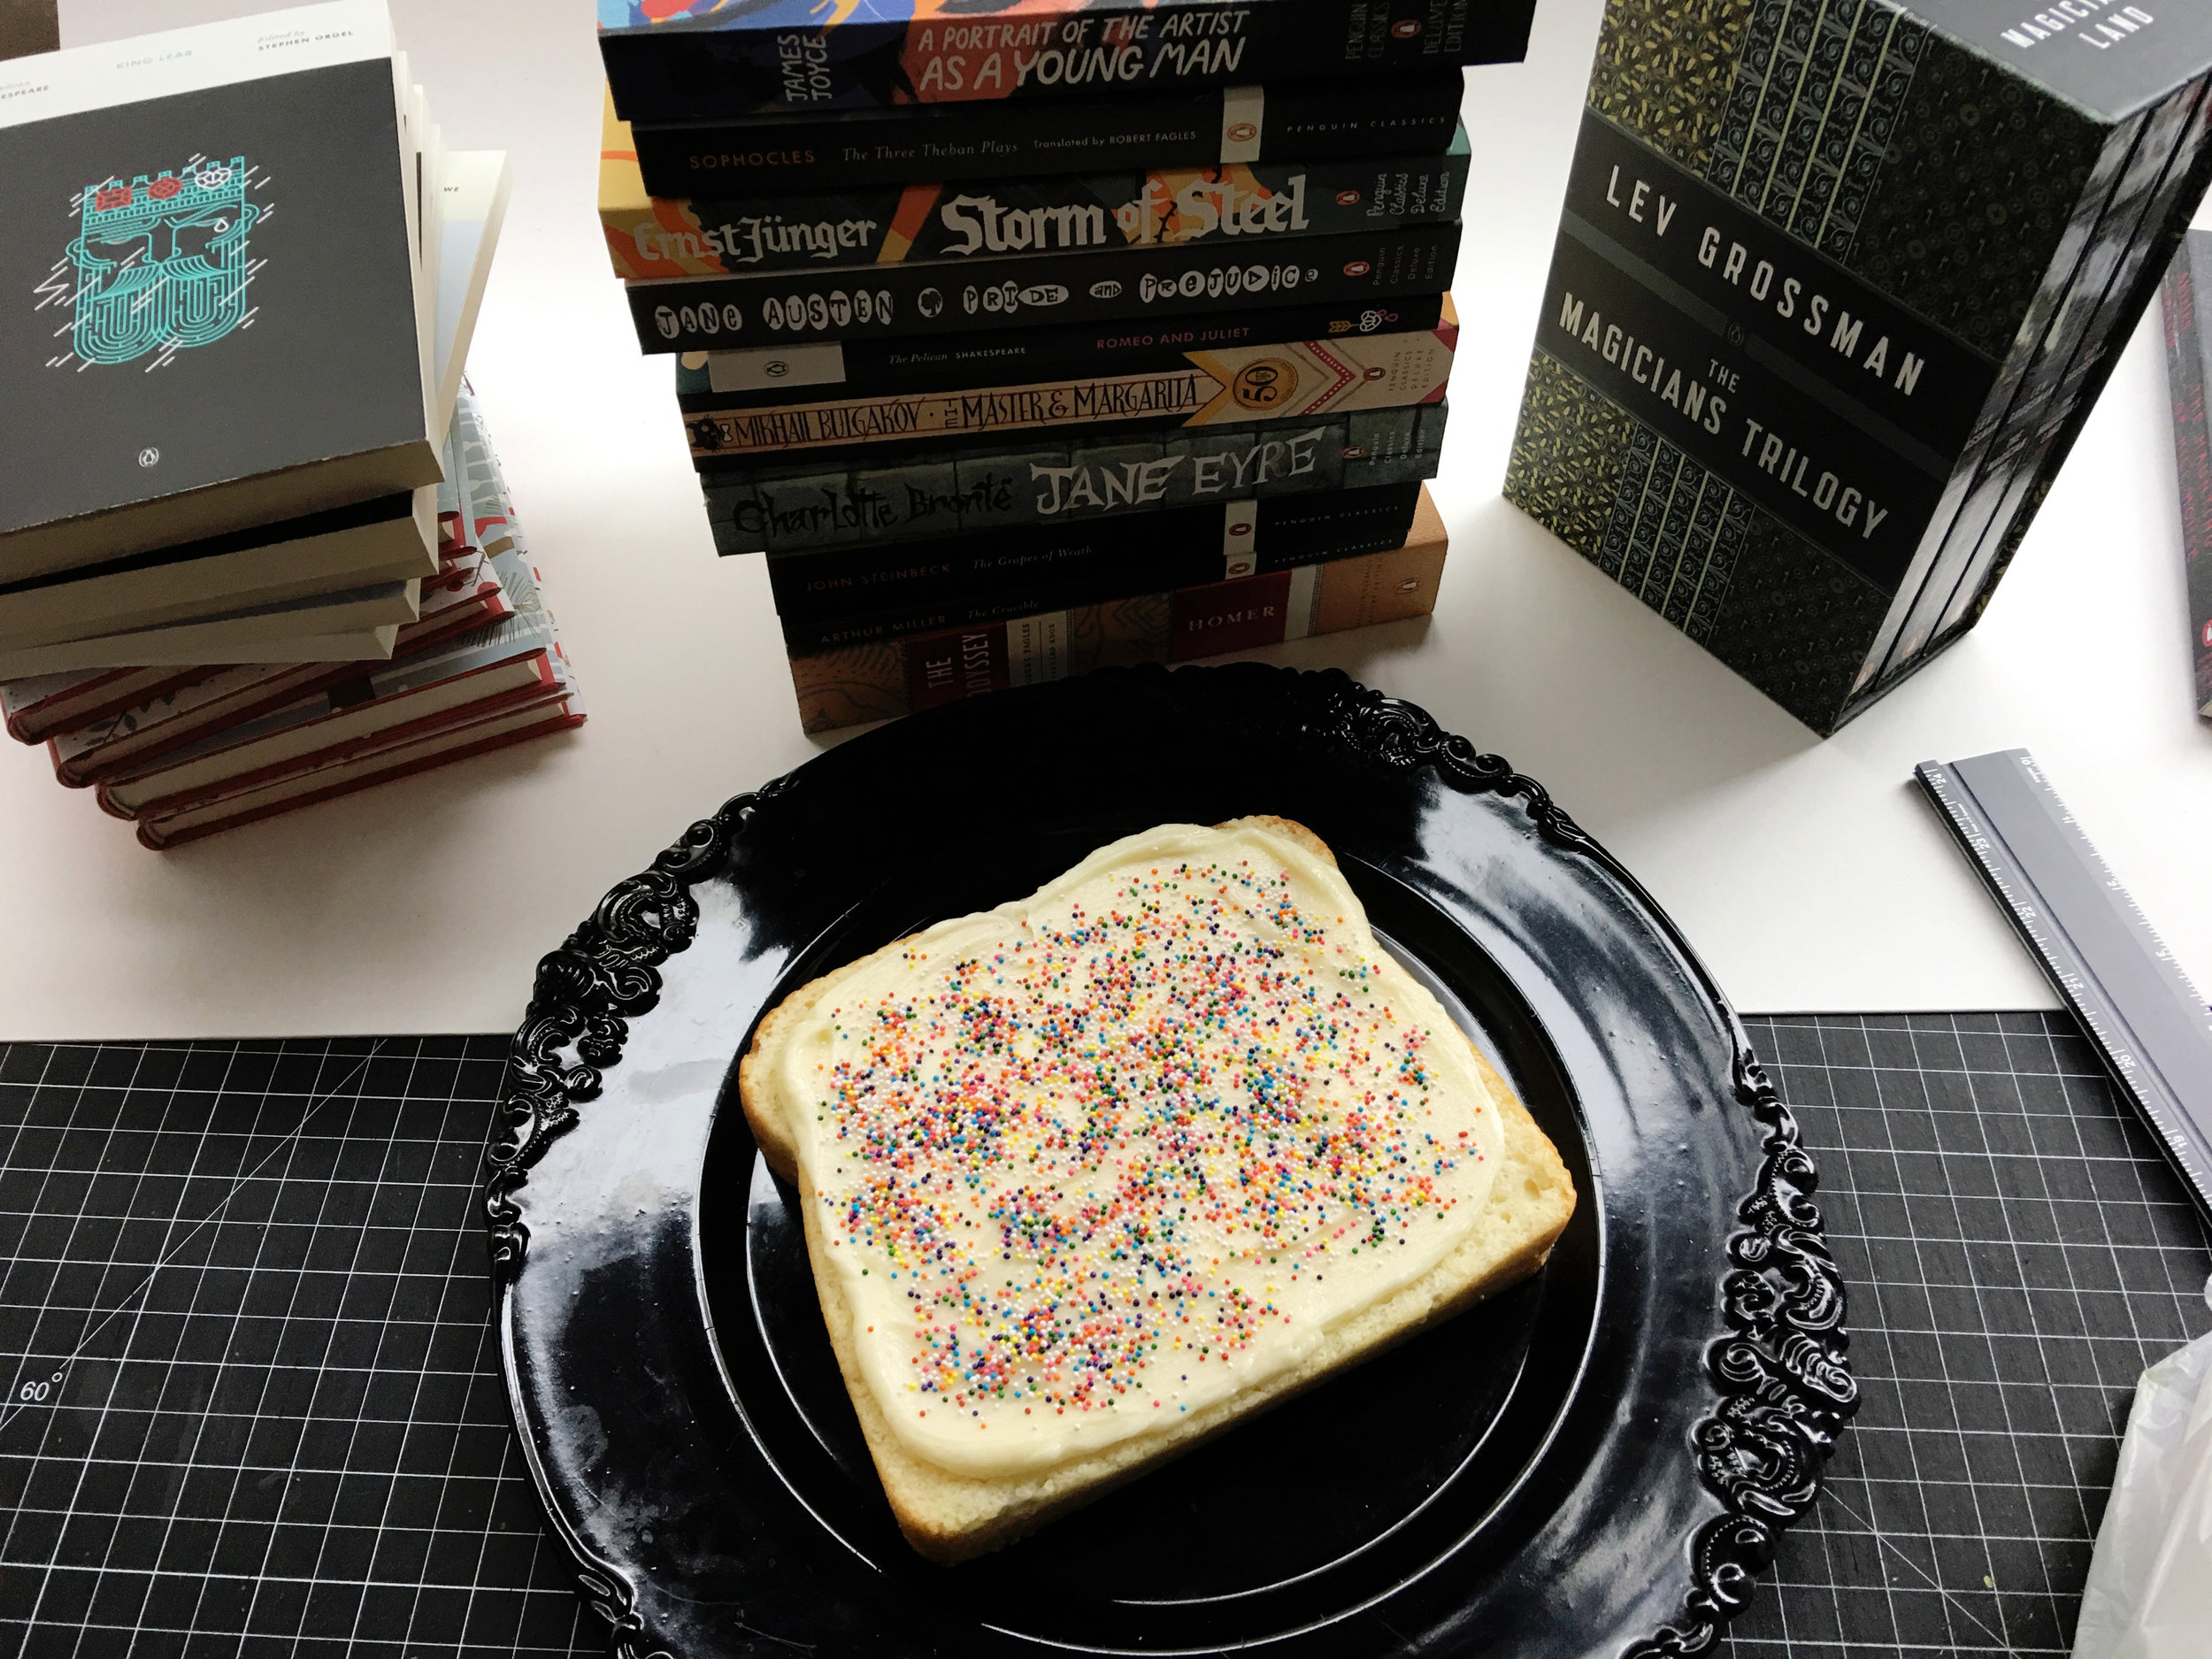 The finished cake is about the size of a trade paperback book (show here to scale on a co-worker's desk).